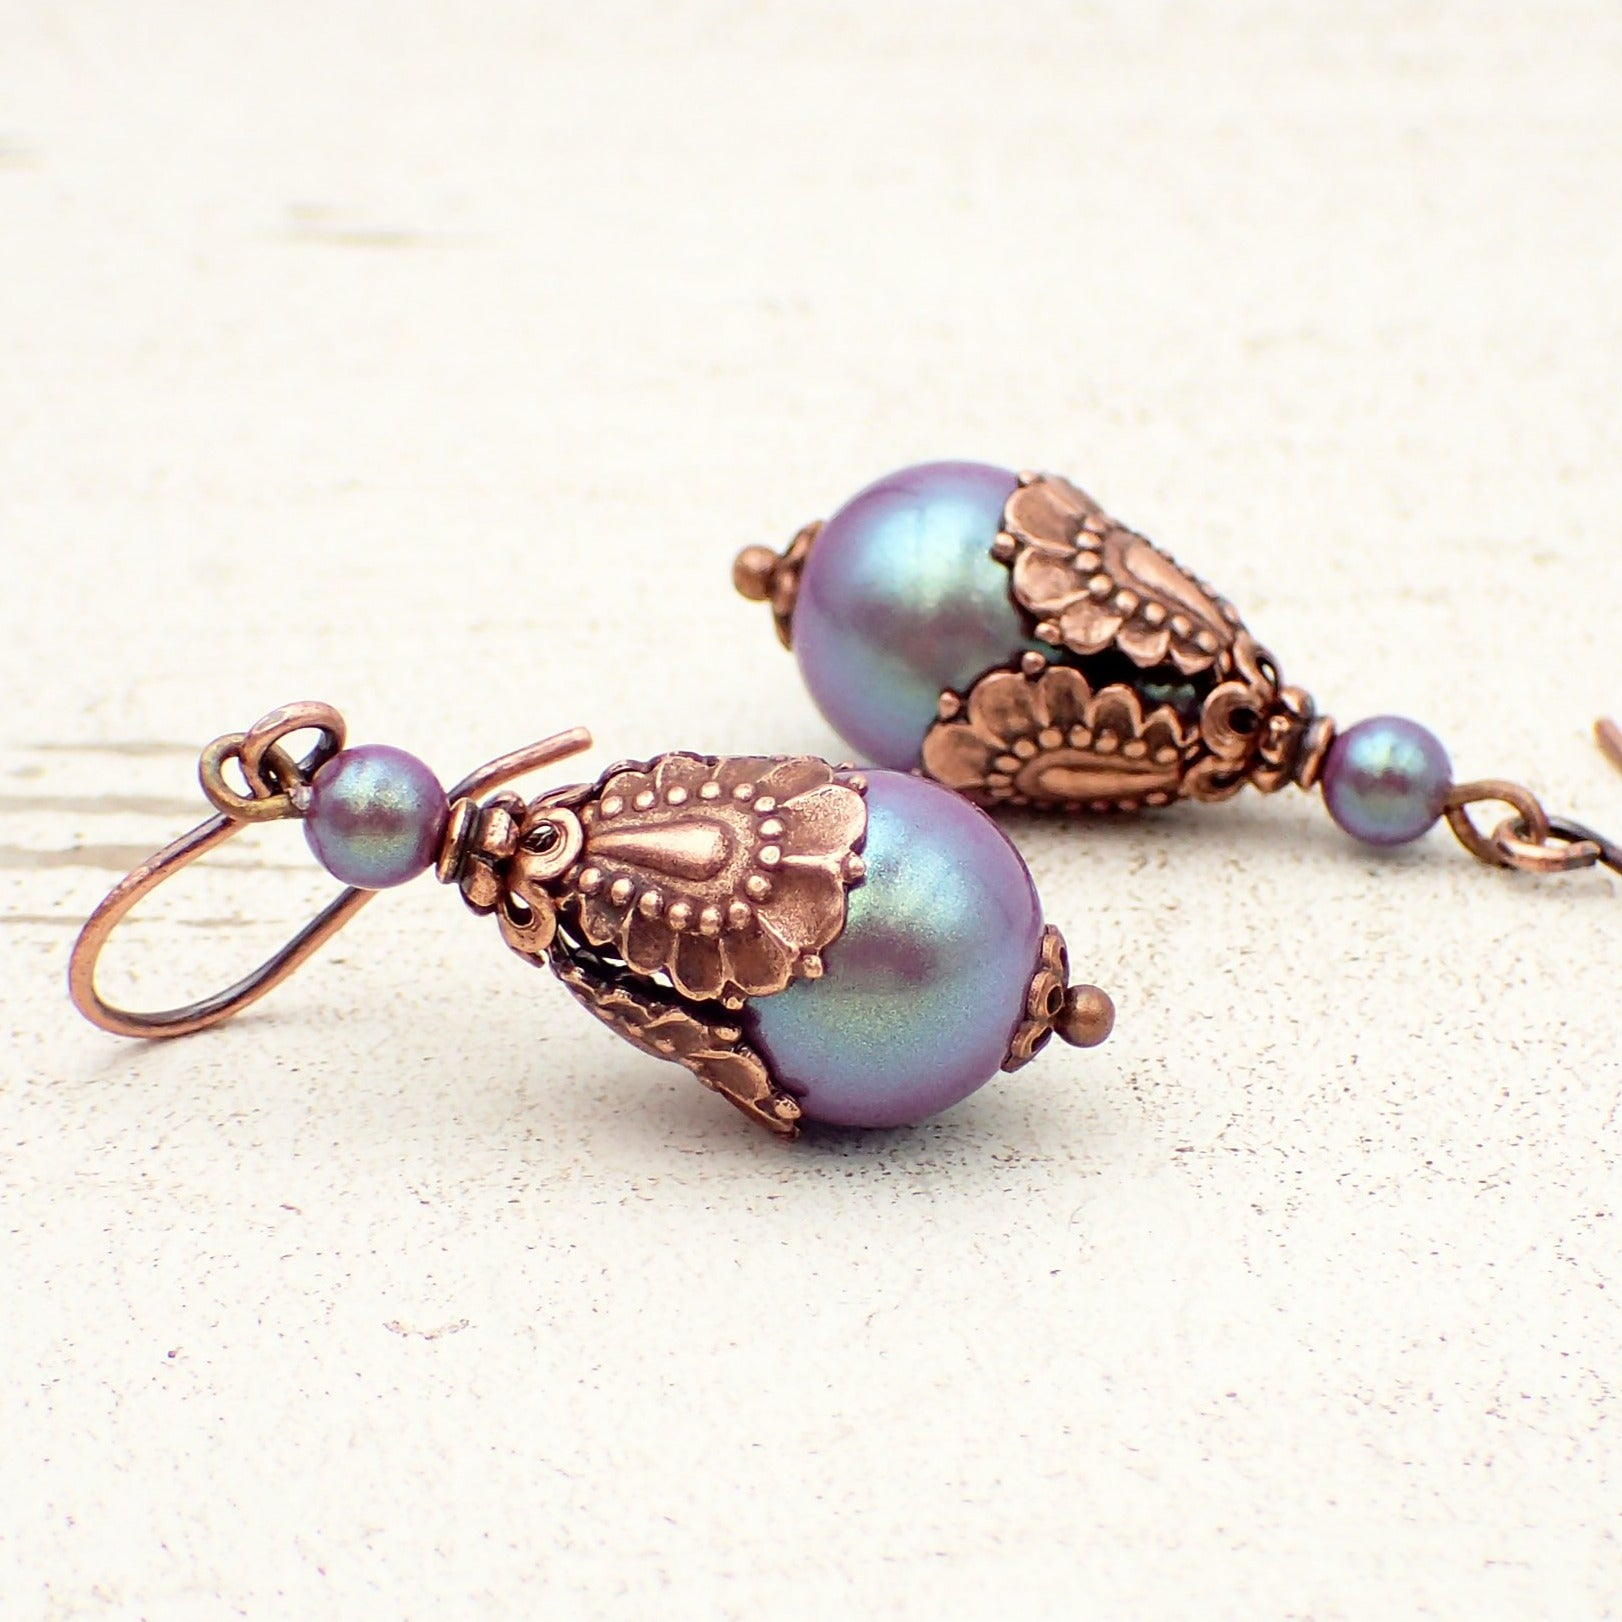 Victorian Style Earrings with Iridescent Purple Crystal Simulated Pearls and Antiqued Copper Details